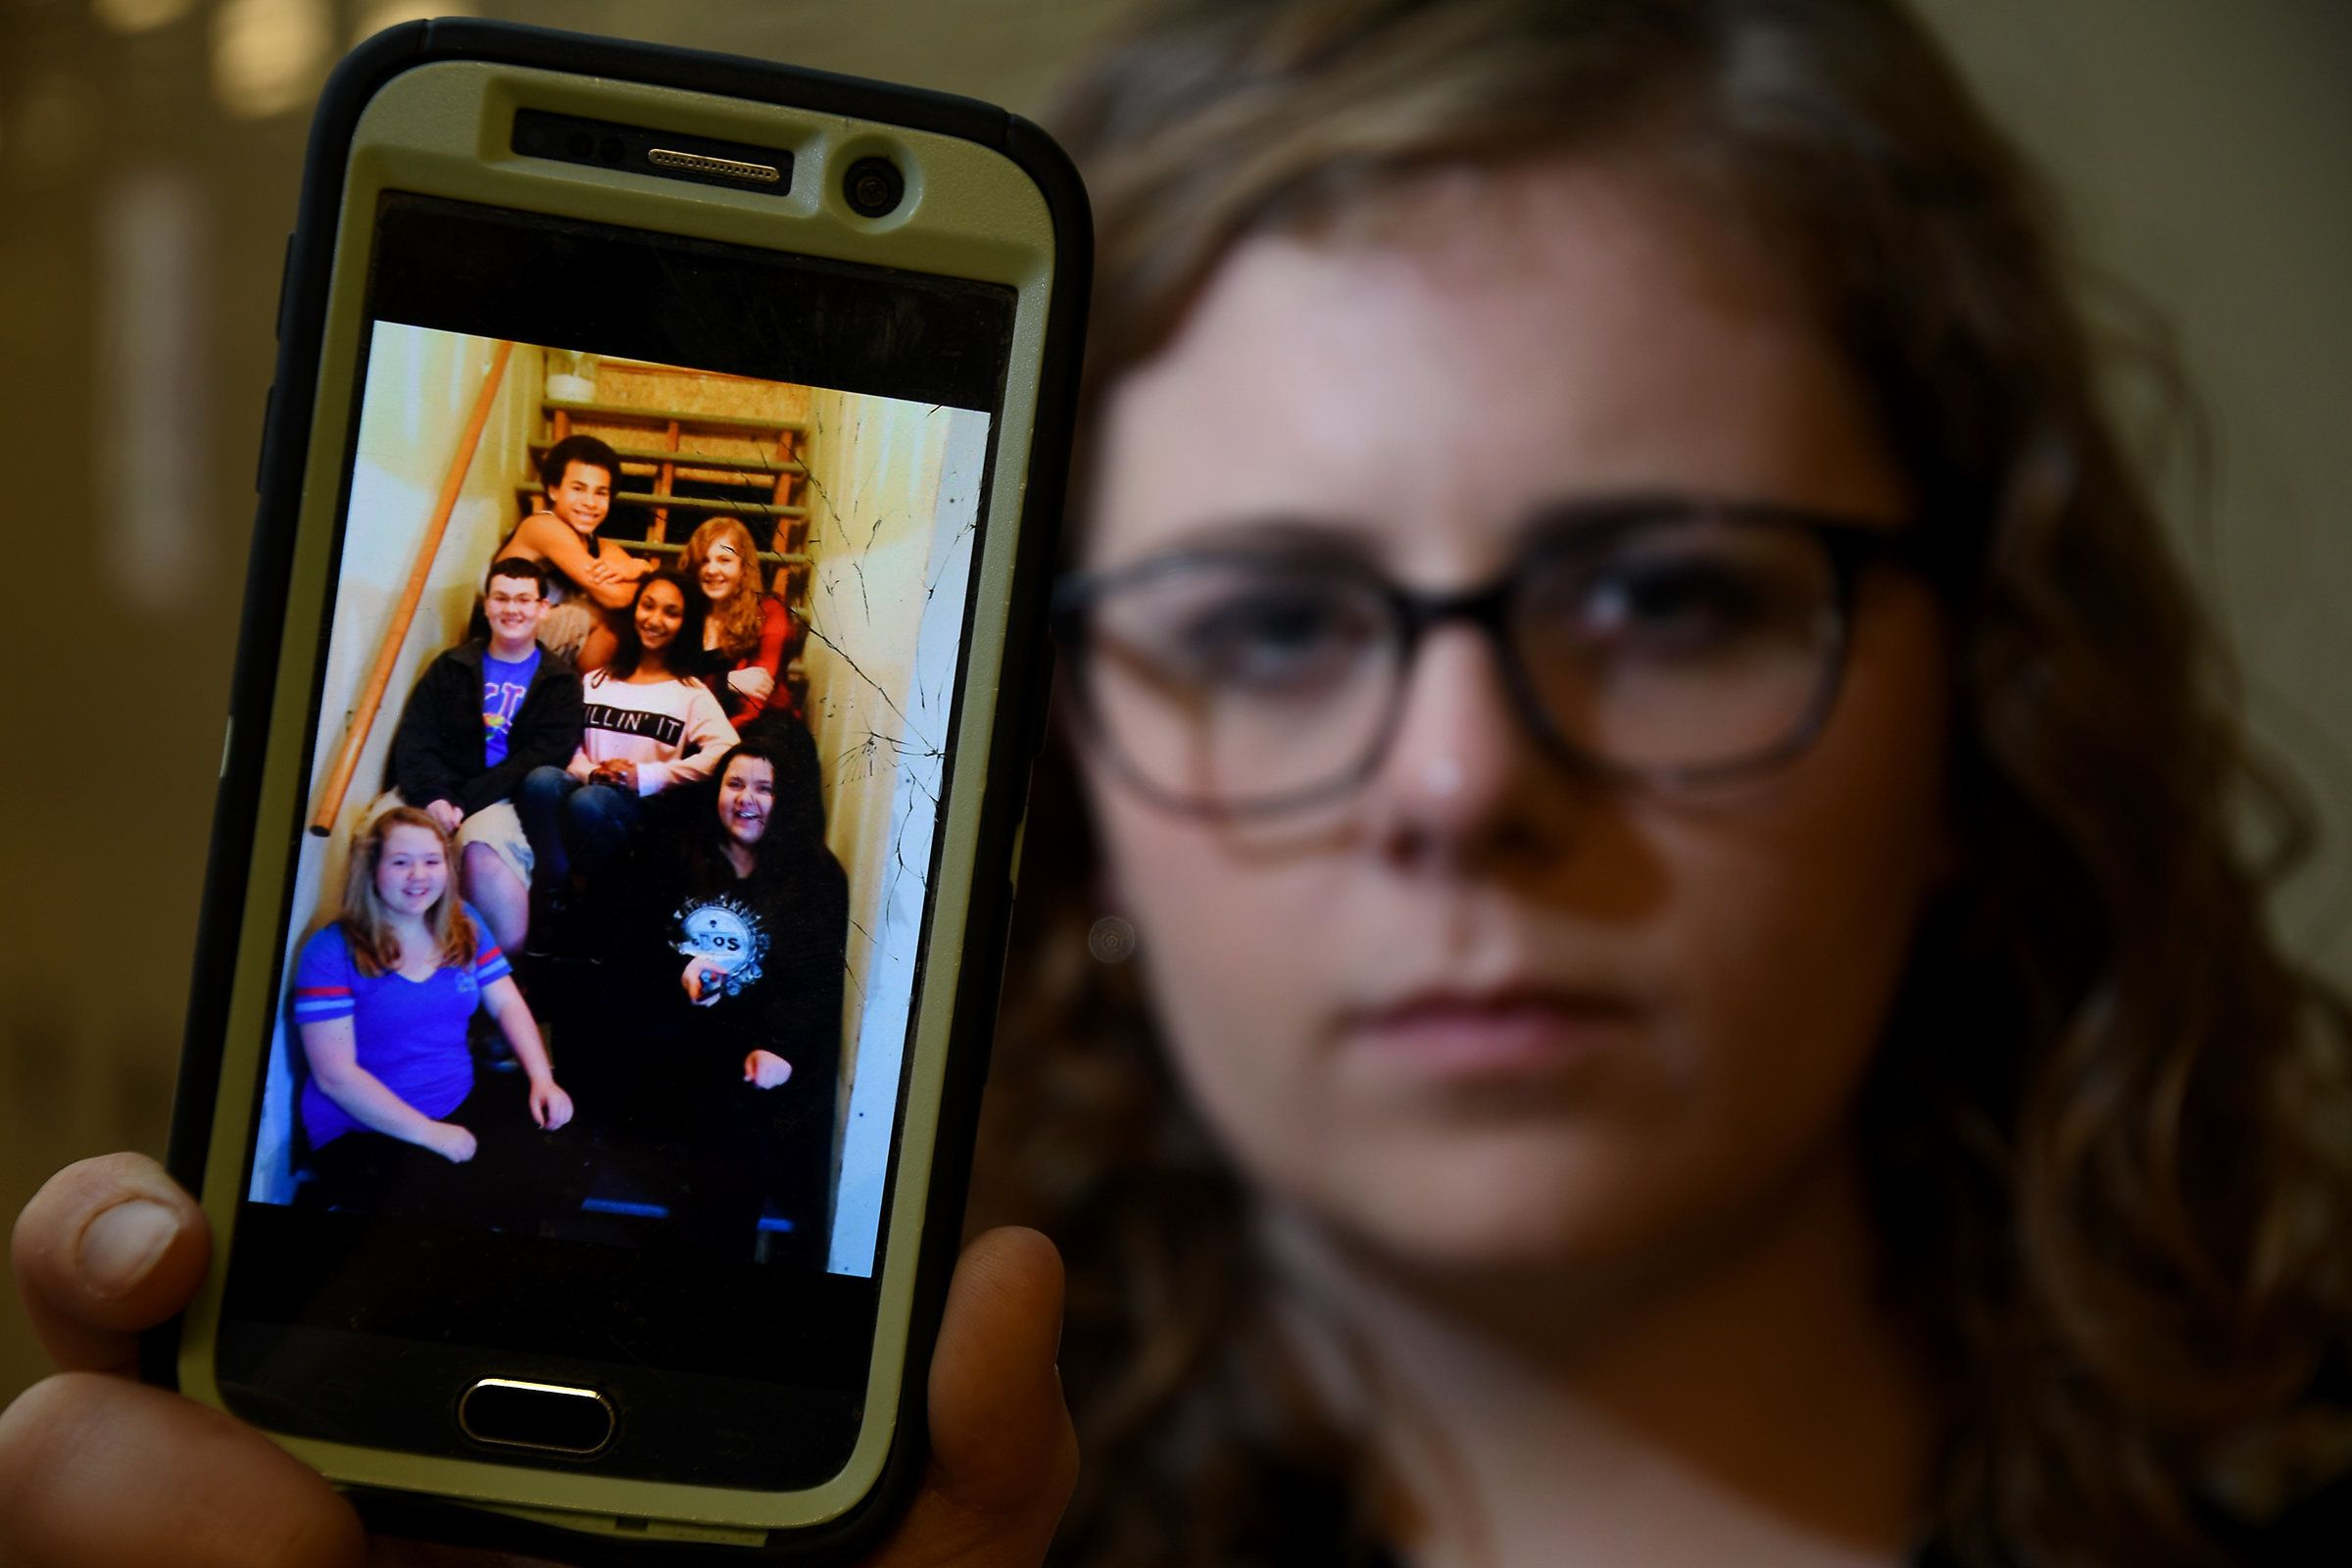 Price shows her phone screensaver, which features a photo of her and some friends, including Hoston.